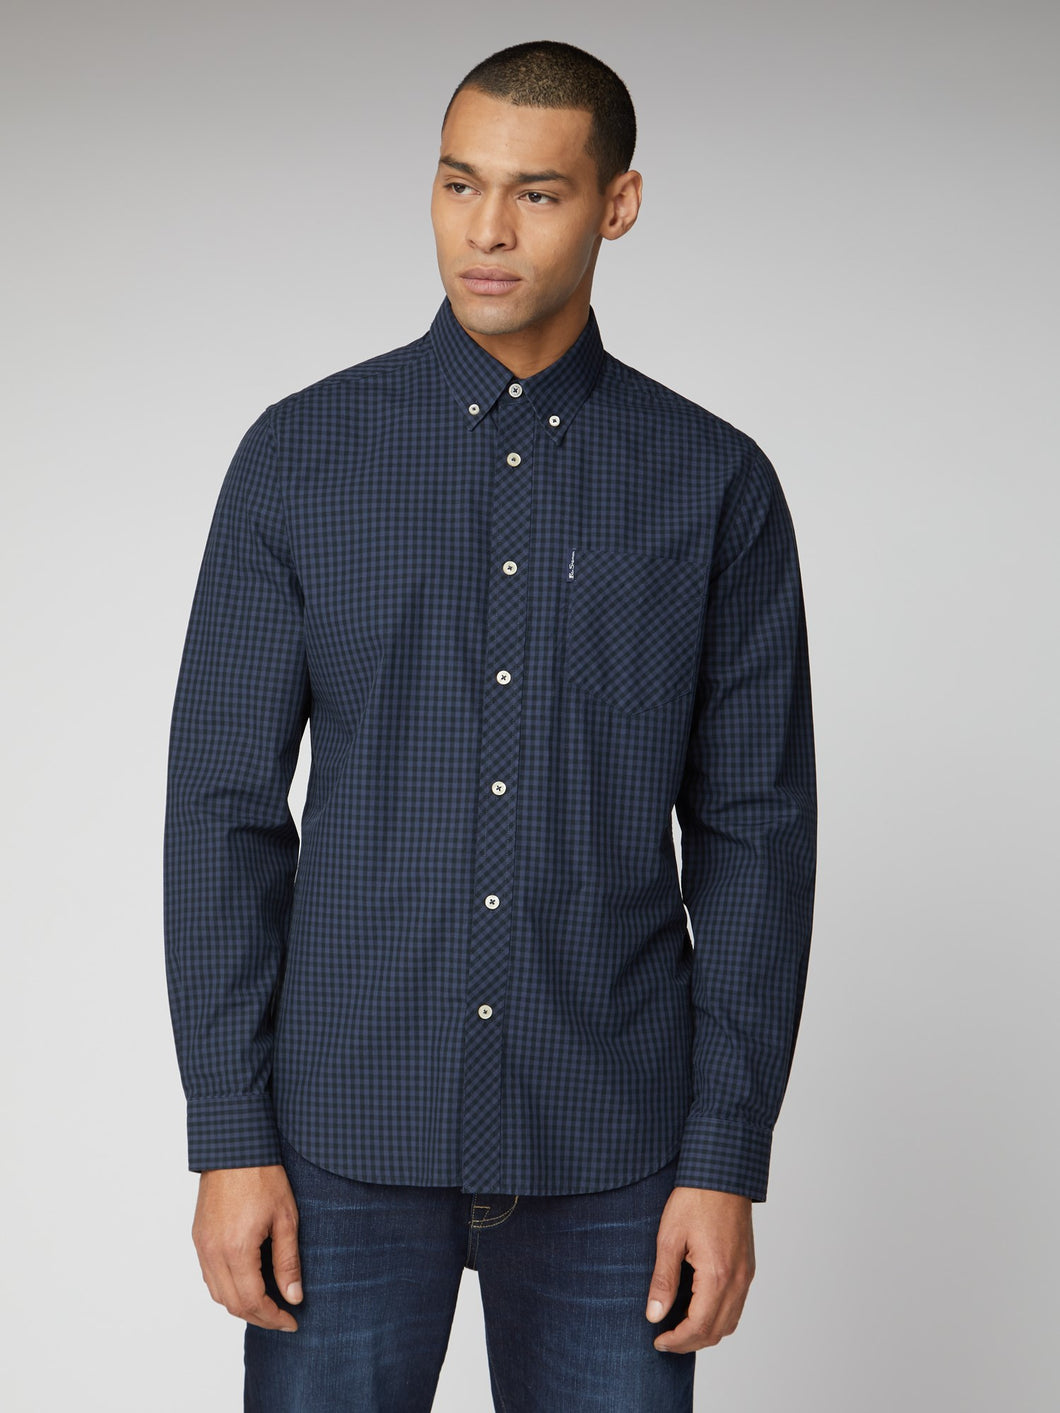 Long-Sleeve Signature Gingham Shirt